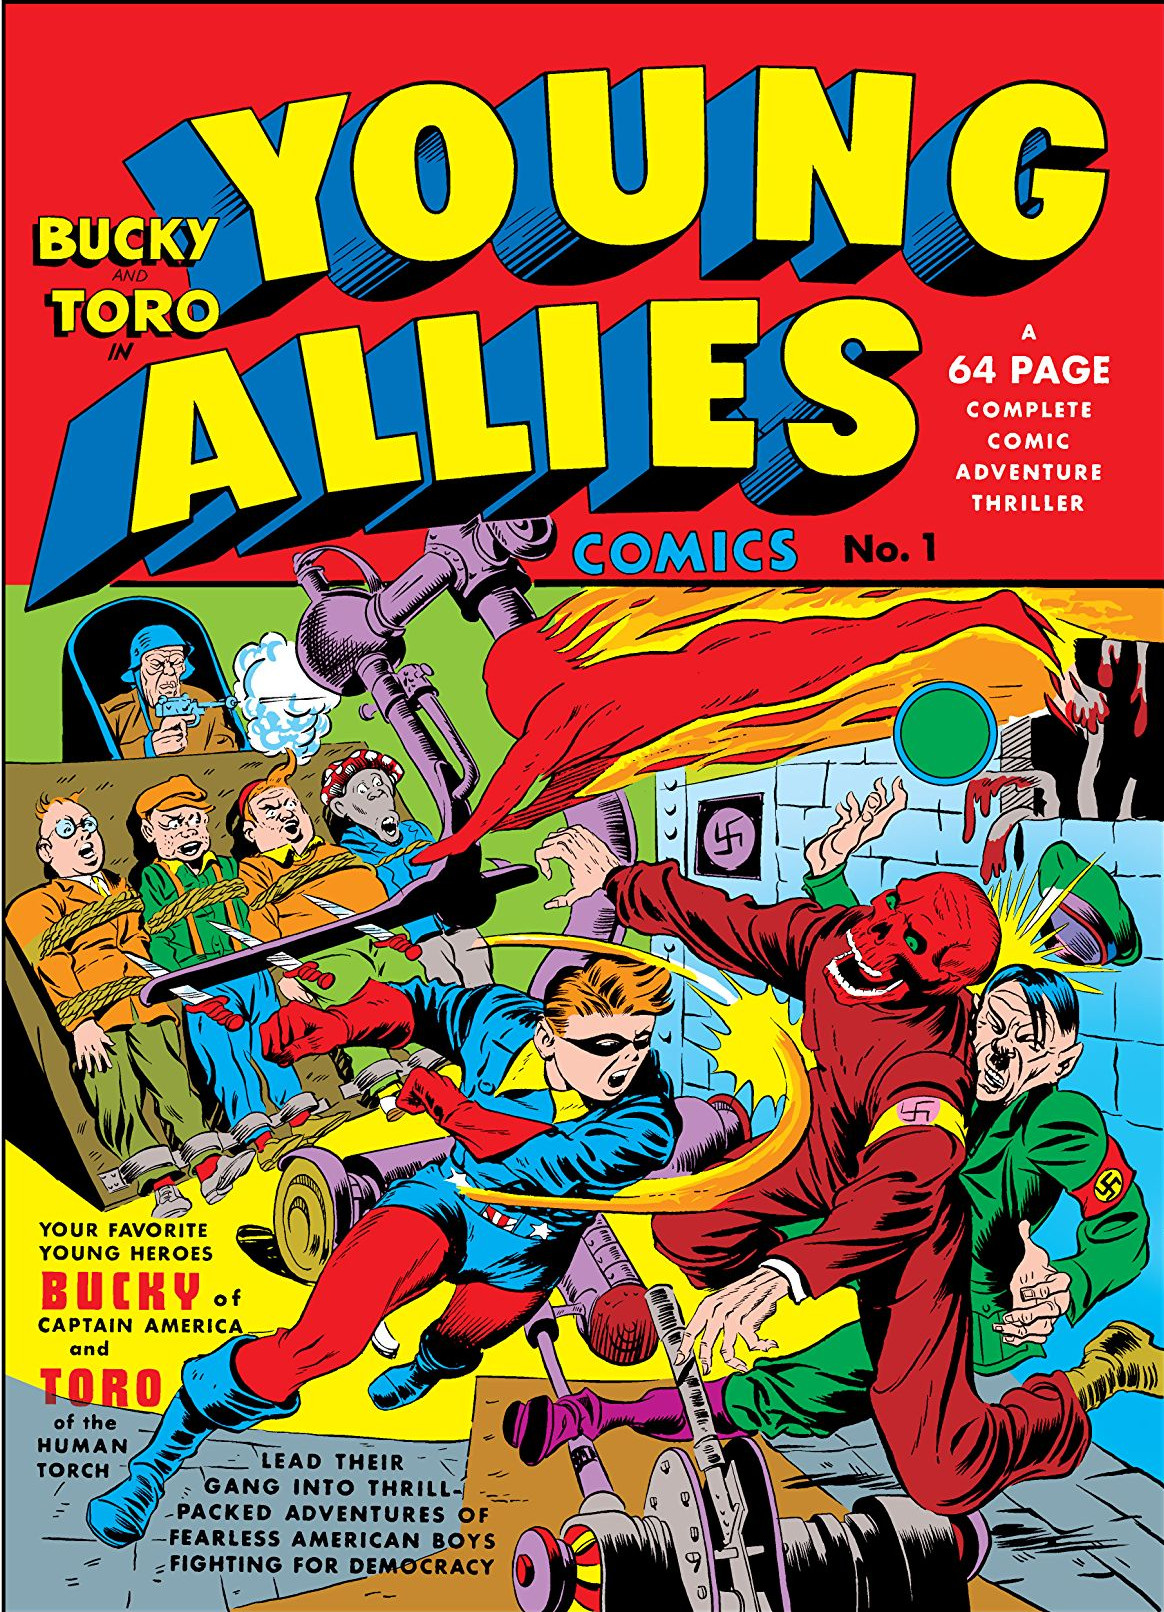 Copertina di Young Allies 1 del 1941, di Jack Kirby e Syd Shores